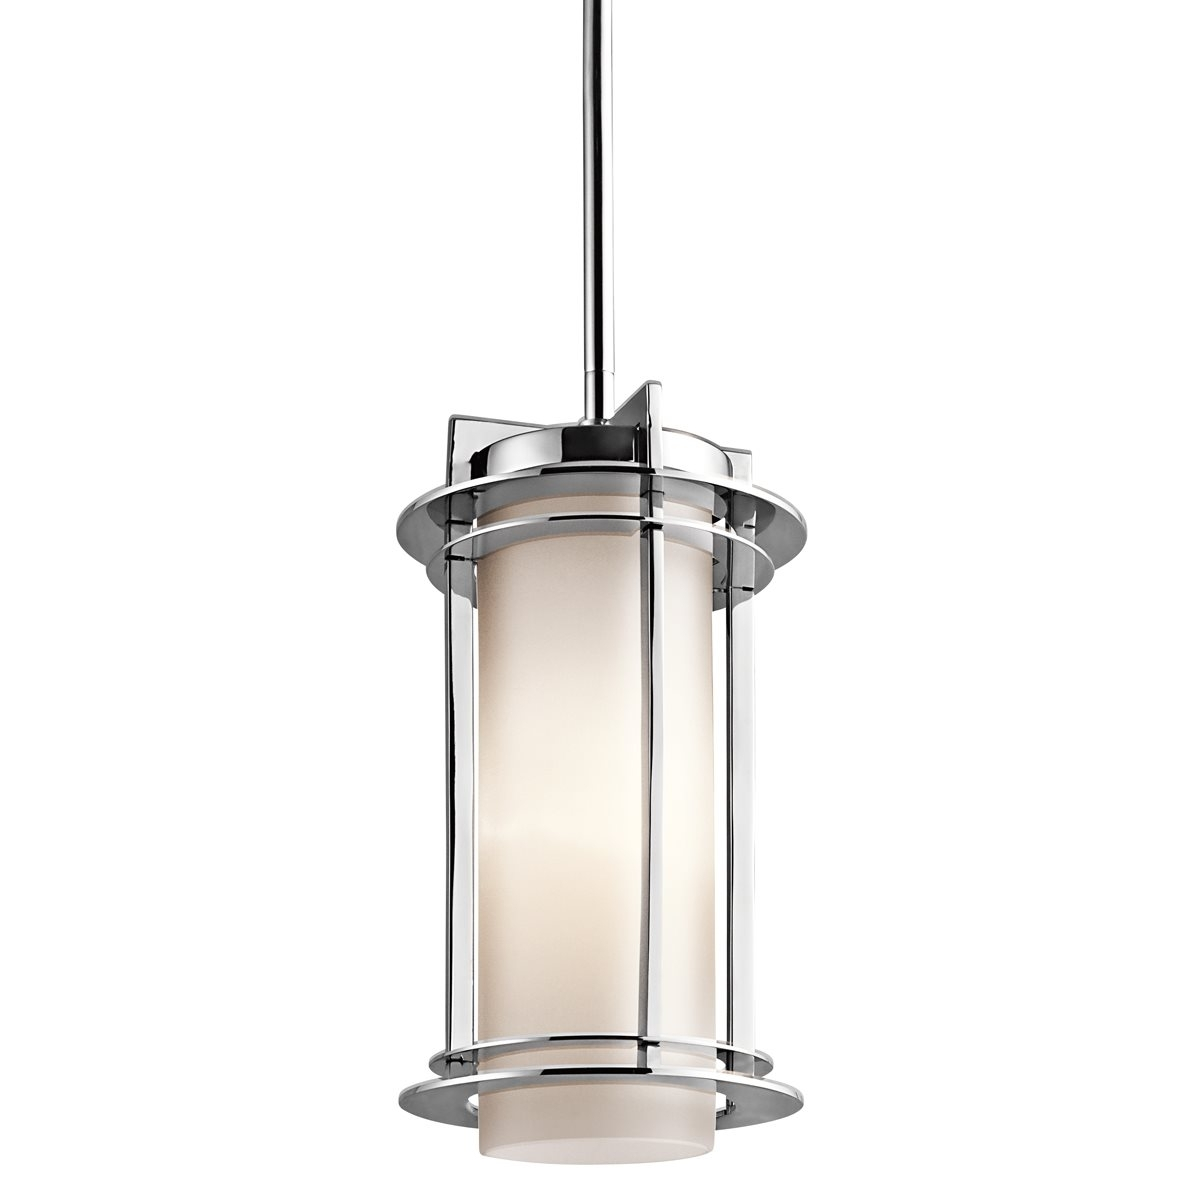 41 Types Better Hanging Outdoor Light On Wall Lighting Luxury In Outdoor Hanging Lights At Walmart (#2 of 15)